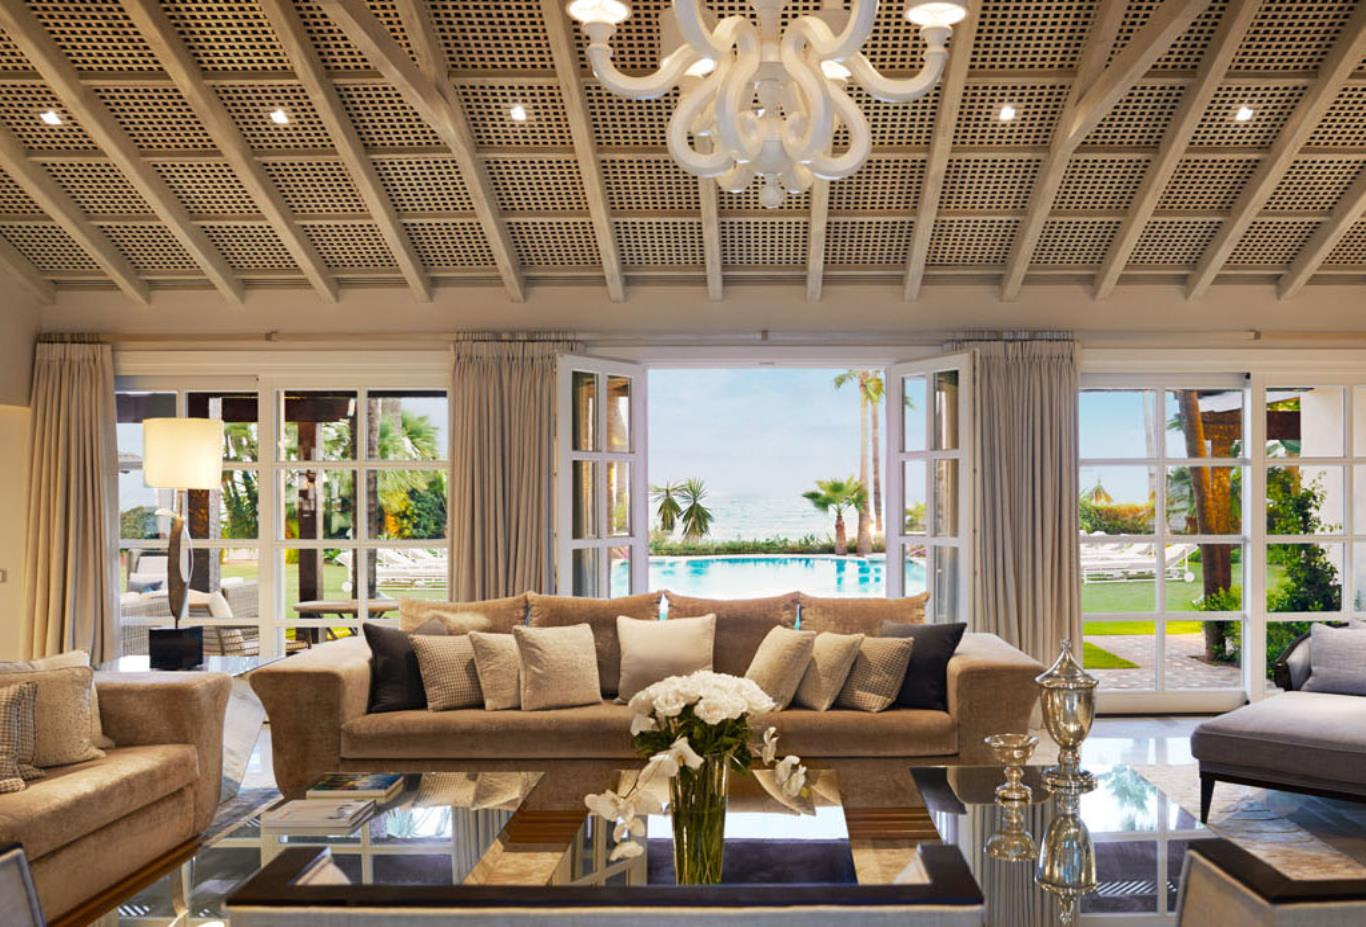 Villa Del Mar - Central Livingroom Pool Views